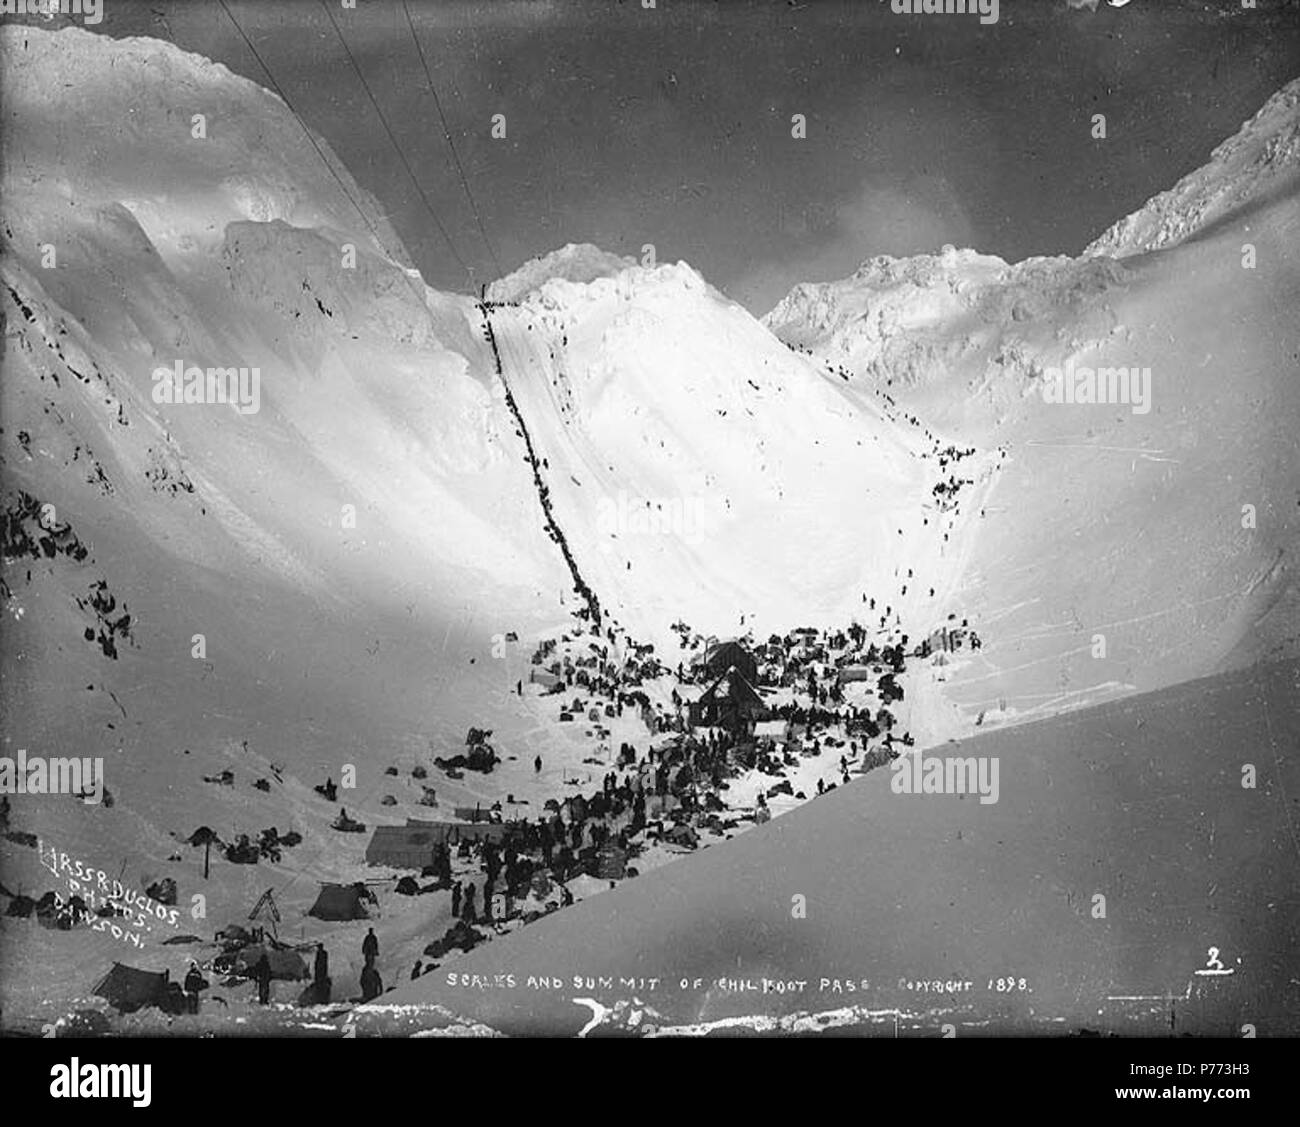 . English: Klondikers at The Scales, ascending the Chilkoot Pass, Alaska, 1898. English: Shows the alternative route Pederson Pass to the right. Pederson Pass may also have been known as Peterson Pass . Caption on image: 'Scales and summit of Chilkoot Pass 1898' Original photograph by Eric A. Hegg 190A; copied by Larss and Duclos . Klondike Gold Rush. Subjects (LCTGM): Tents--Alaska--Chilkoot Pass Subjects (LCSH): Chilkoot Trail; Trails--Alaska; Chilkoot Pass (Alaska); Pederson Pass; Mountain passes--Alaska  . 1898 7 Klondikers at The Scales, ascending the Chilkoot Pass, Alaska, 1898 (HEGG 725 - Stock Image